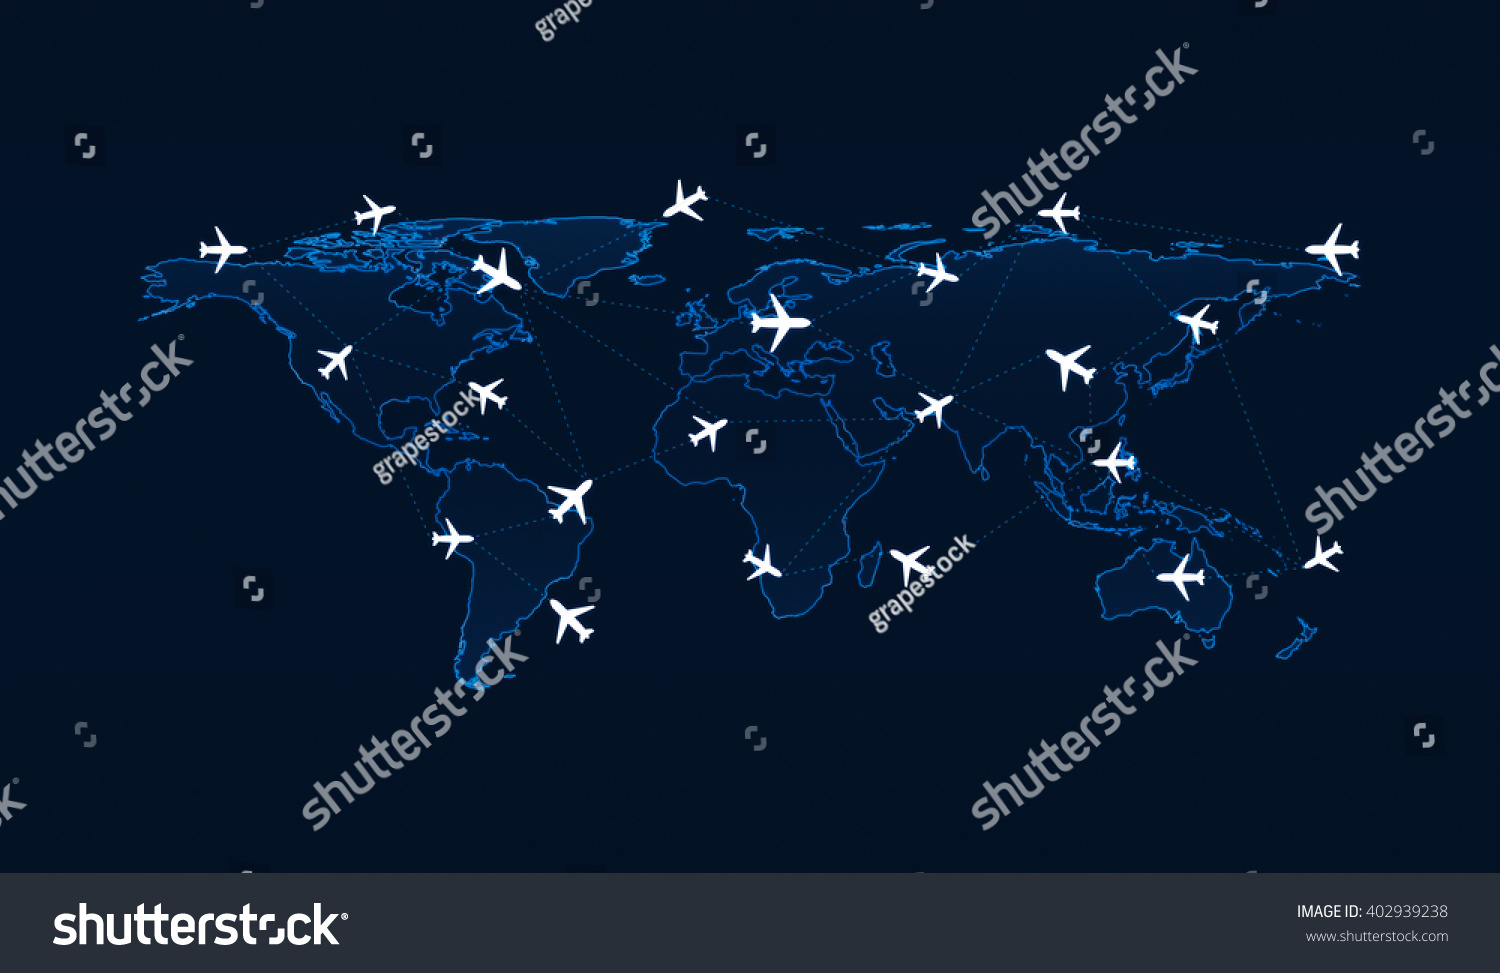 Light blue world map flight routes stock illustration 402939238 light blue world map with flight routes airplanes on blue background airplane transportation concept gumiabroncs Gallery